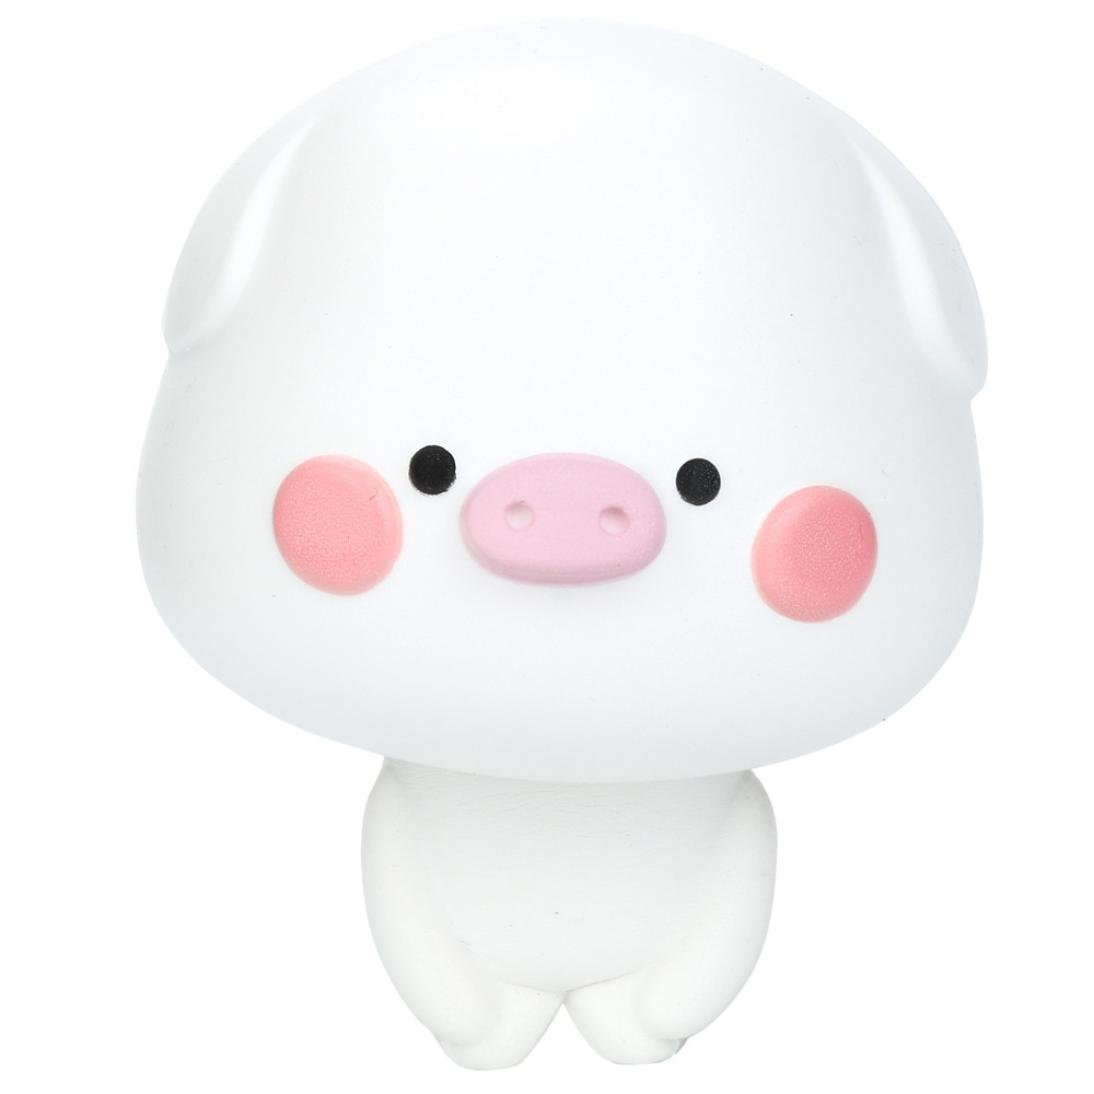 Mini Squishy Toy, Naladoo 1PC Cute White Pig Doll Slow Rising Scented Fun Animal Decompression Toys Squeeze Toy IU32566436436